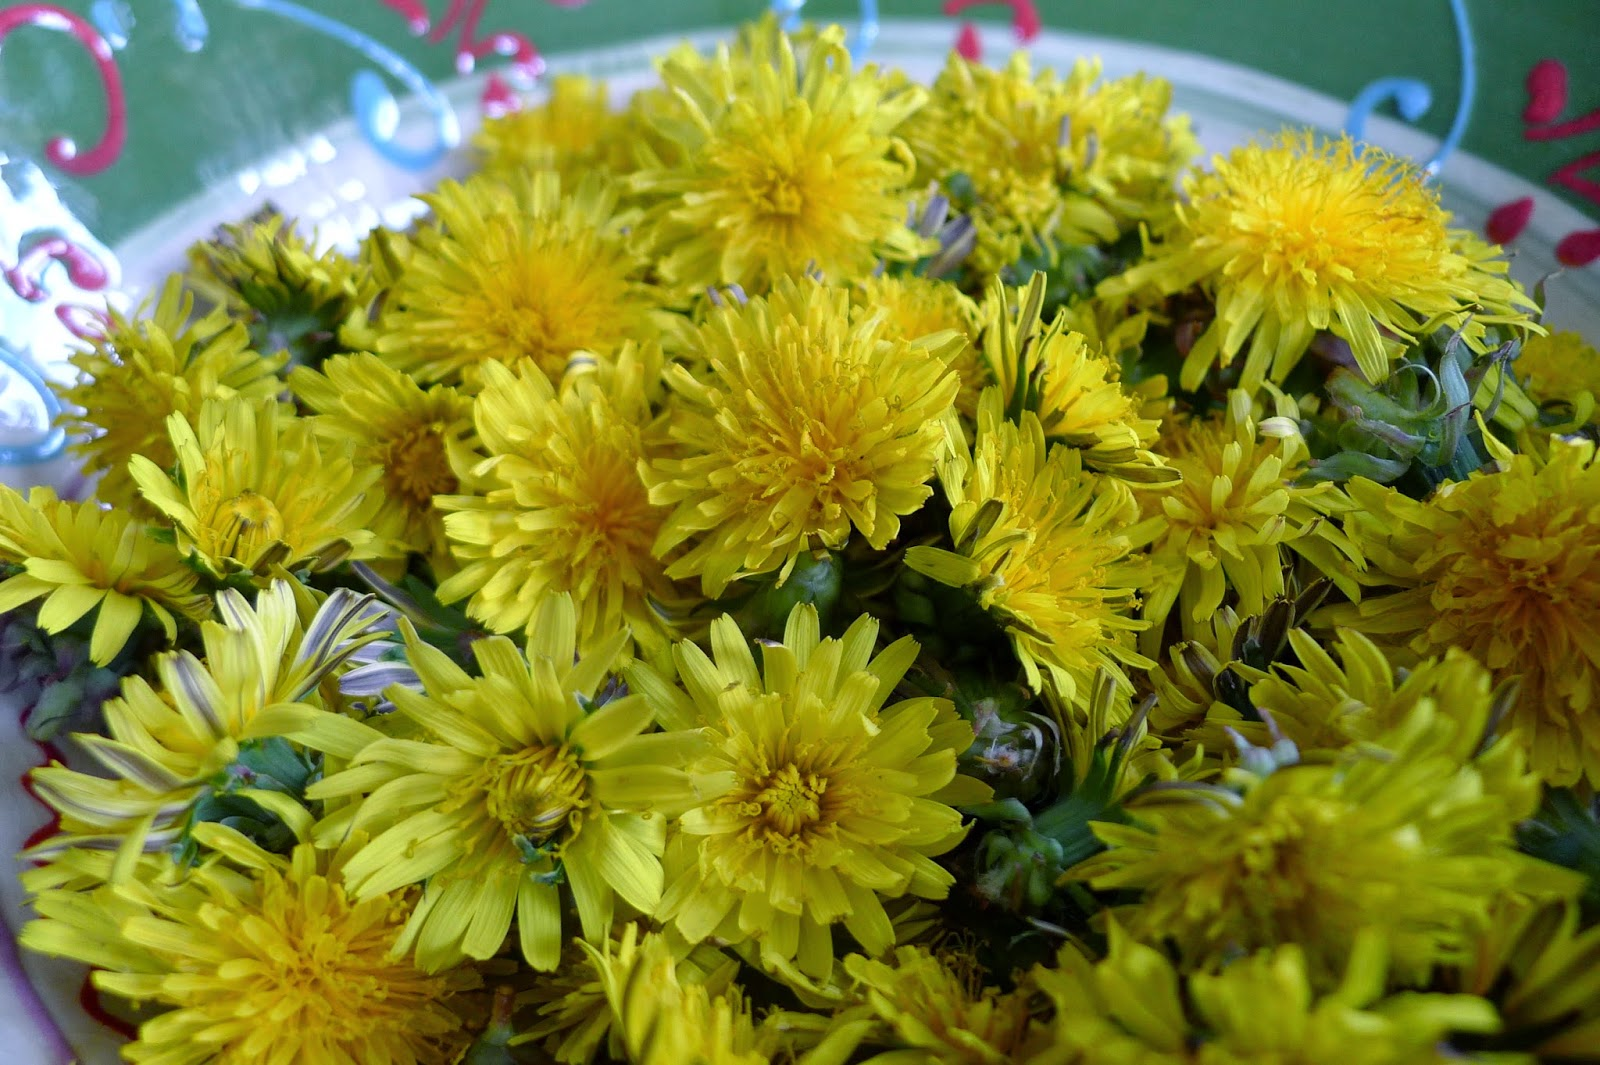 Foraging for dandelions, recipes